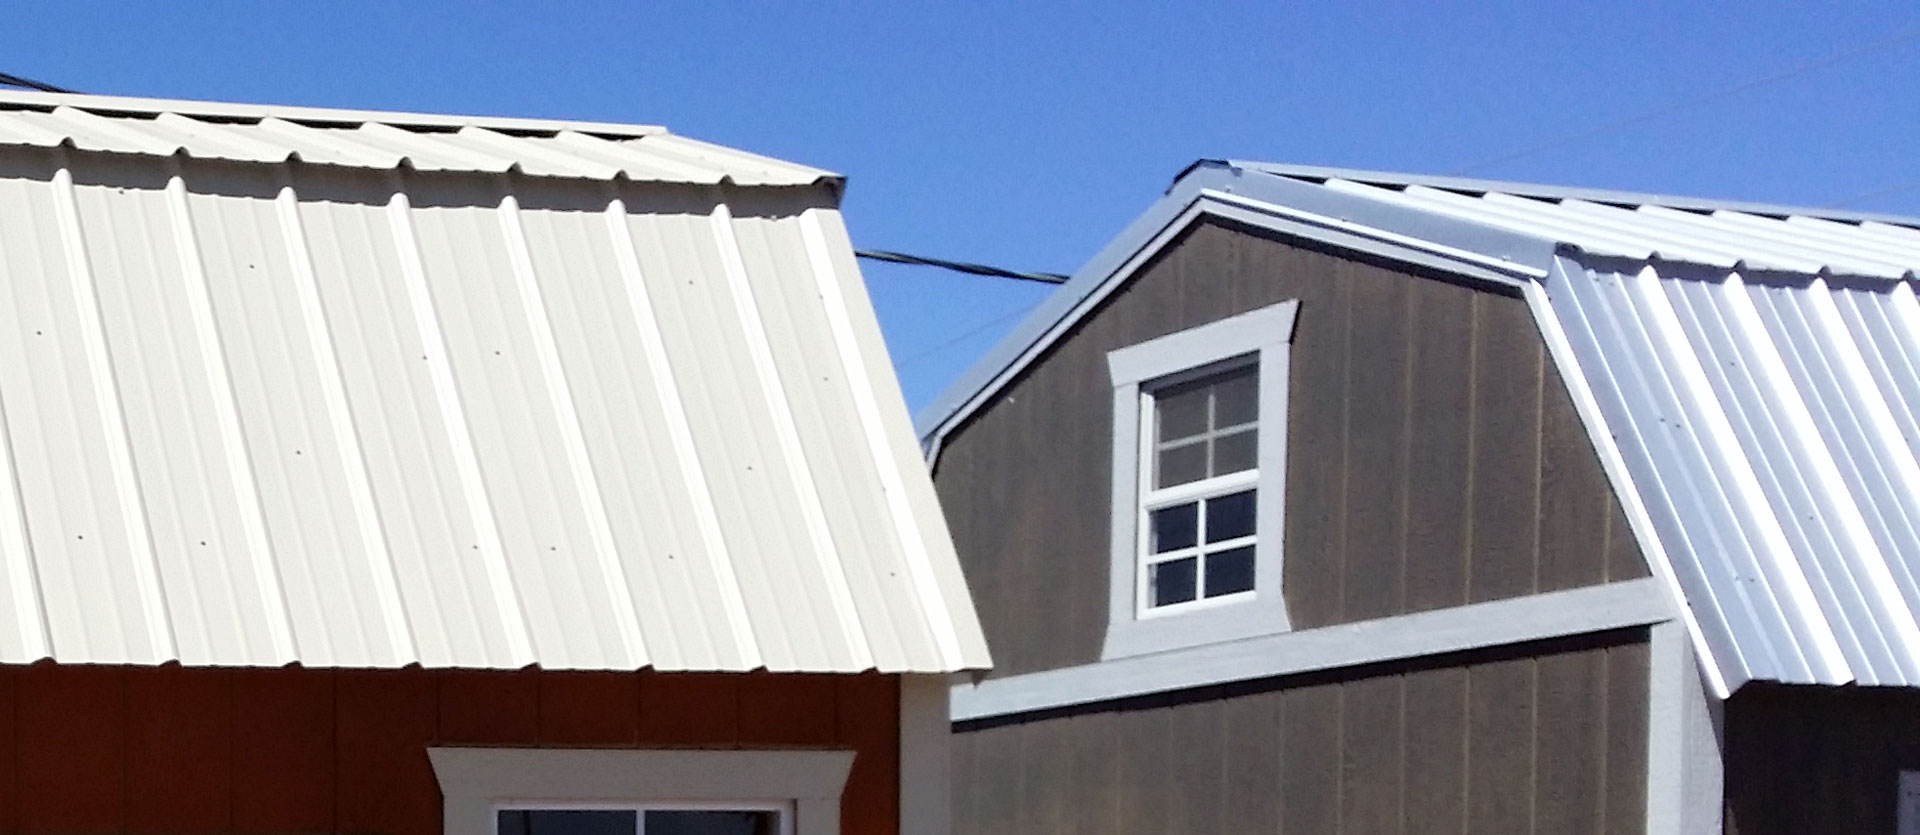 How to install a metal roof instead of shingles on your shed for Gambrel roof metal building